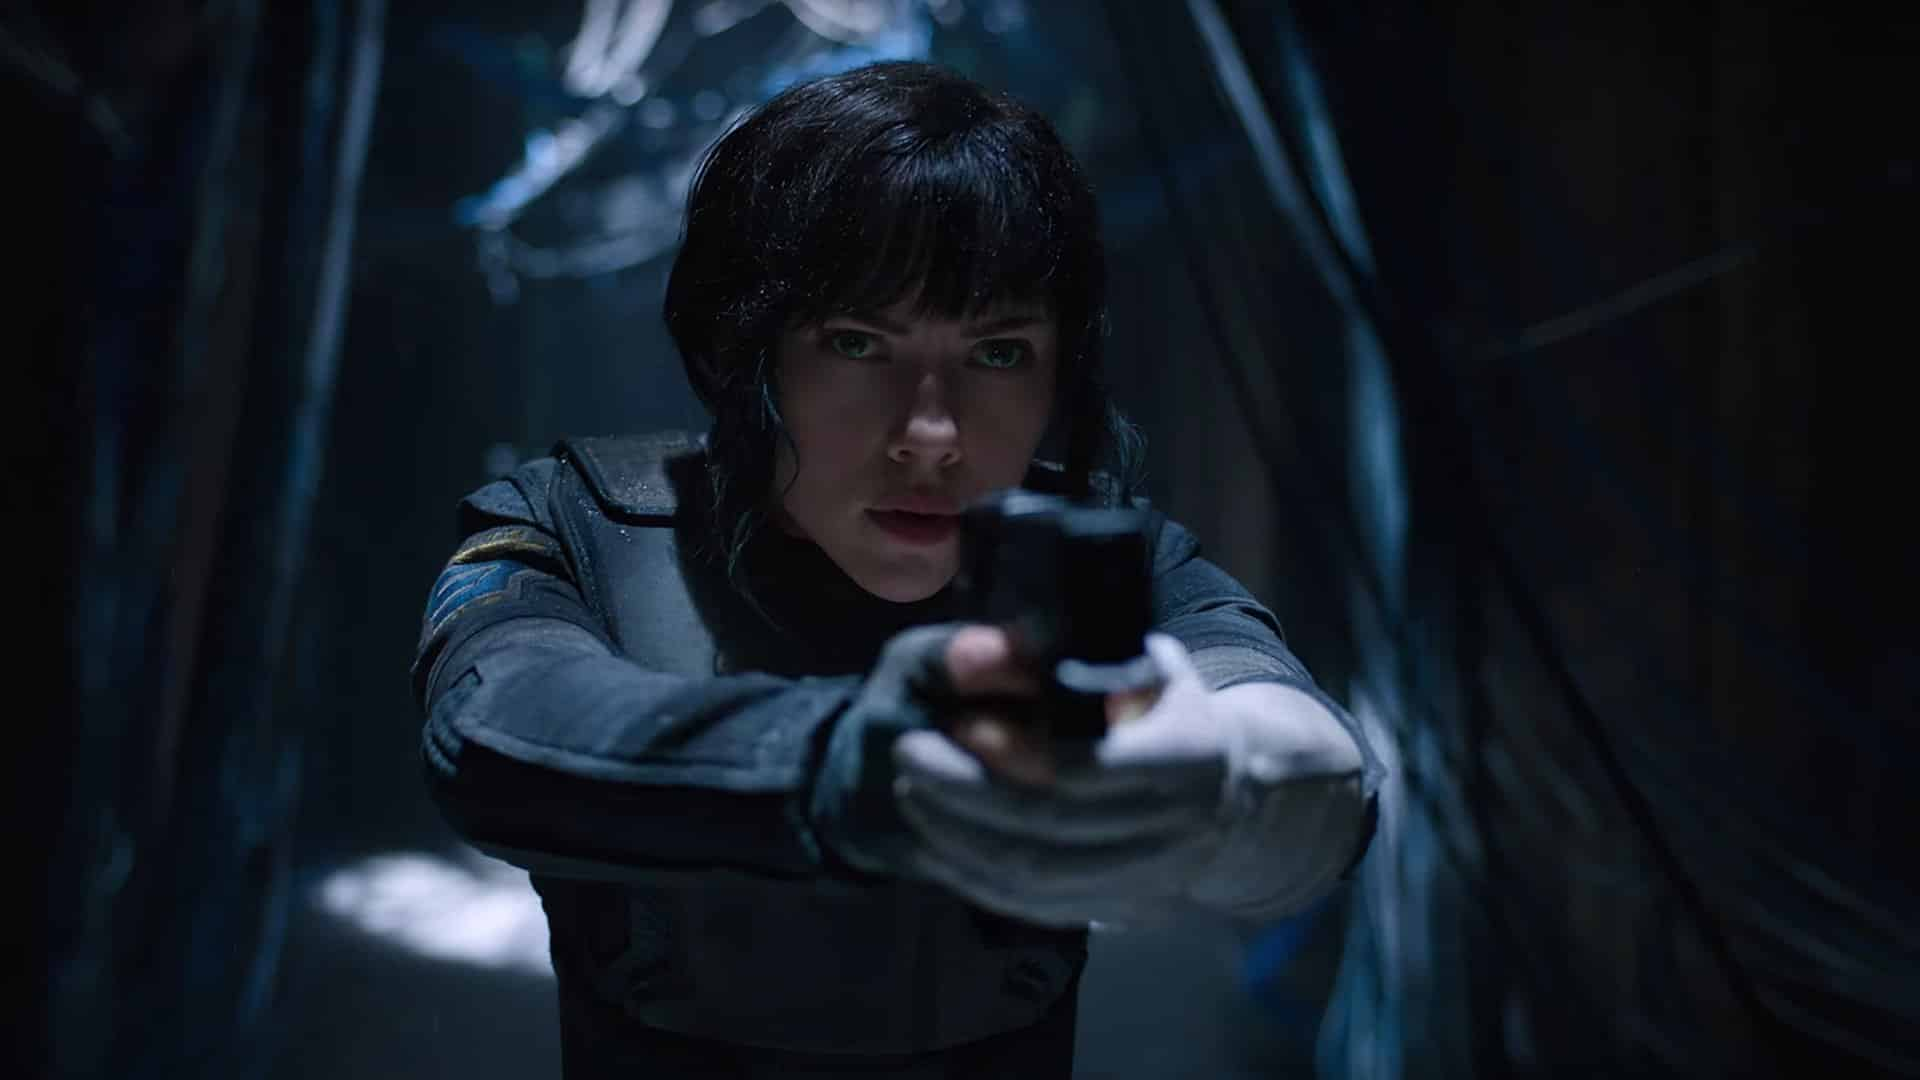 Así habría sido Margot Robbie como protagonista de 'Ghost in the Shell'